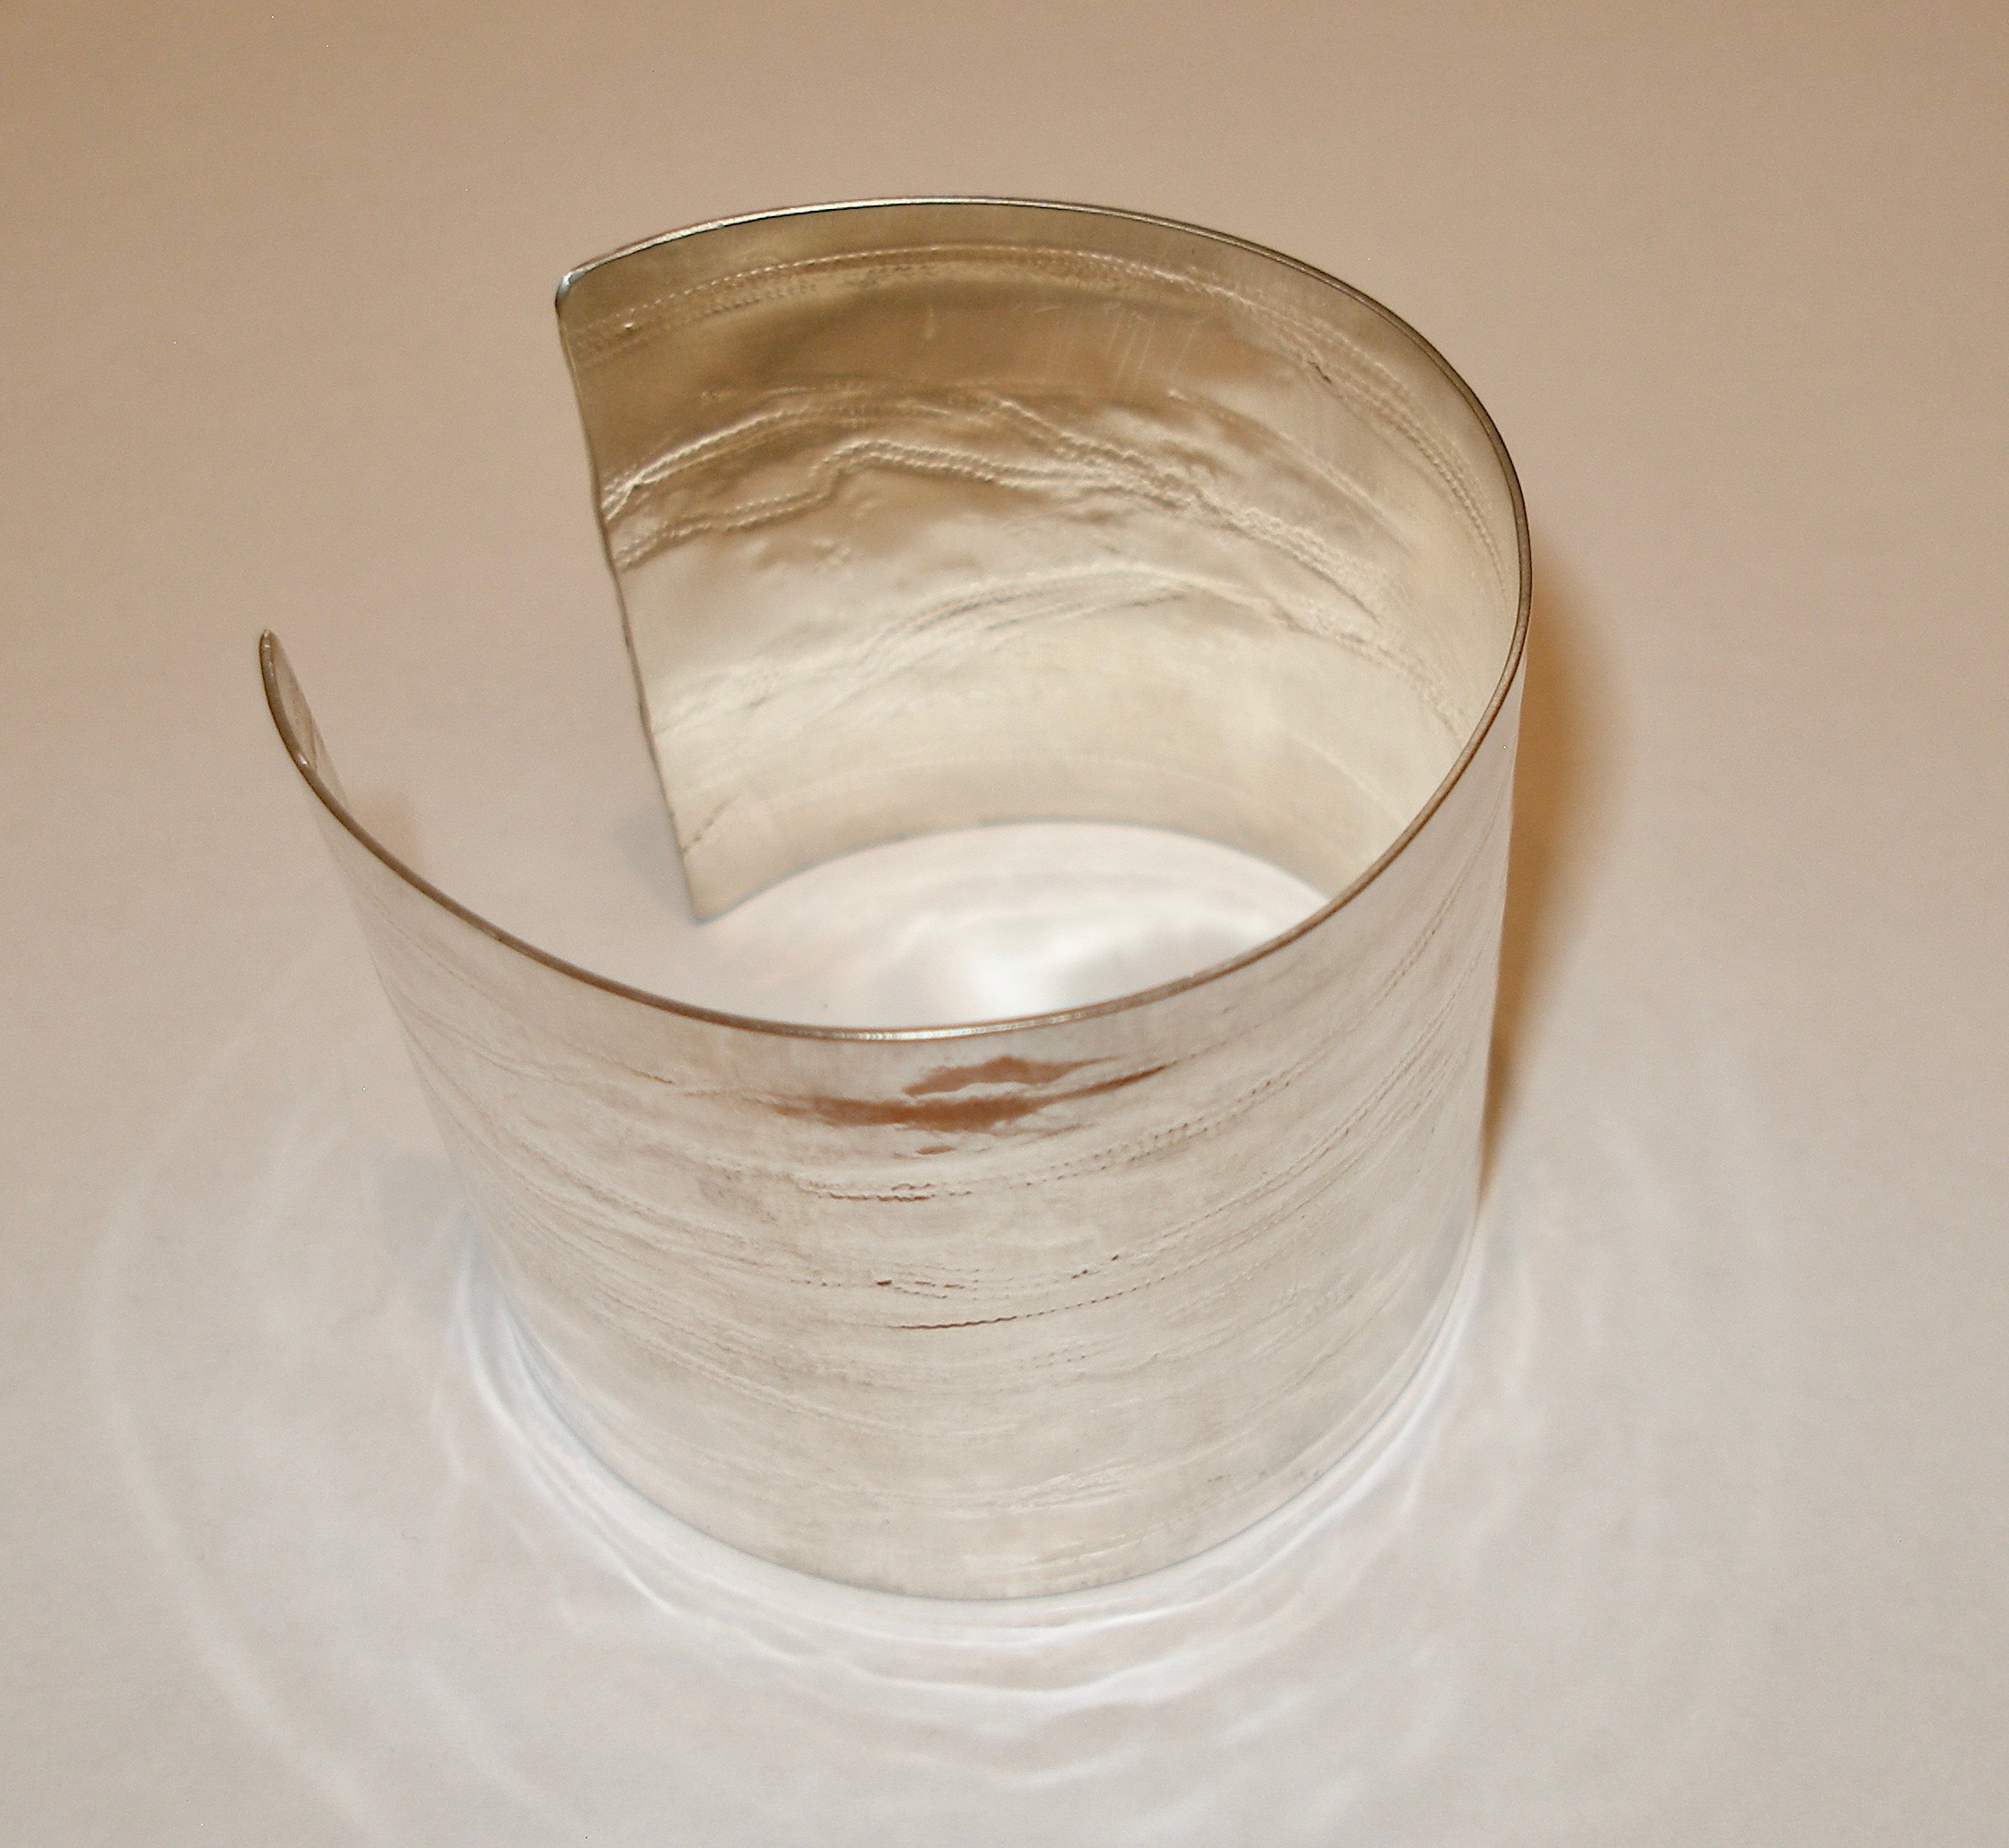 Chunky Textured Silver Large Cuff Bangle